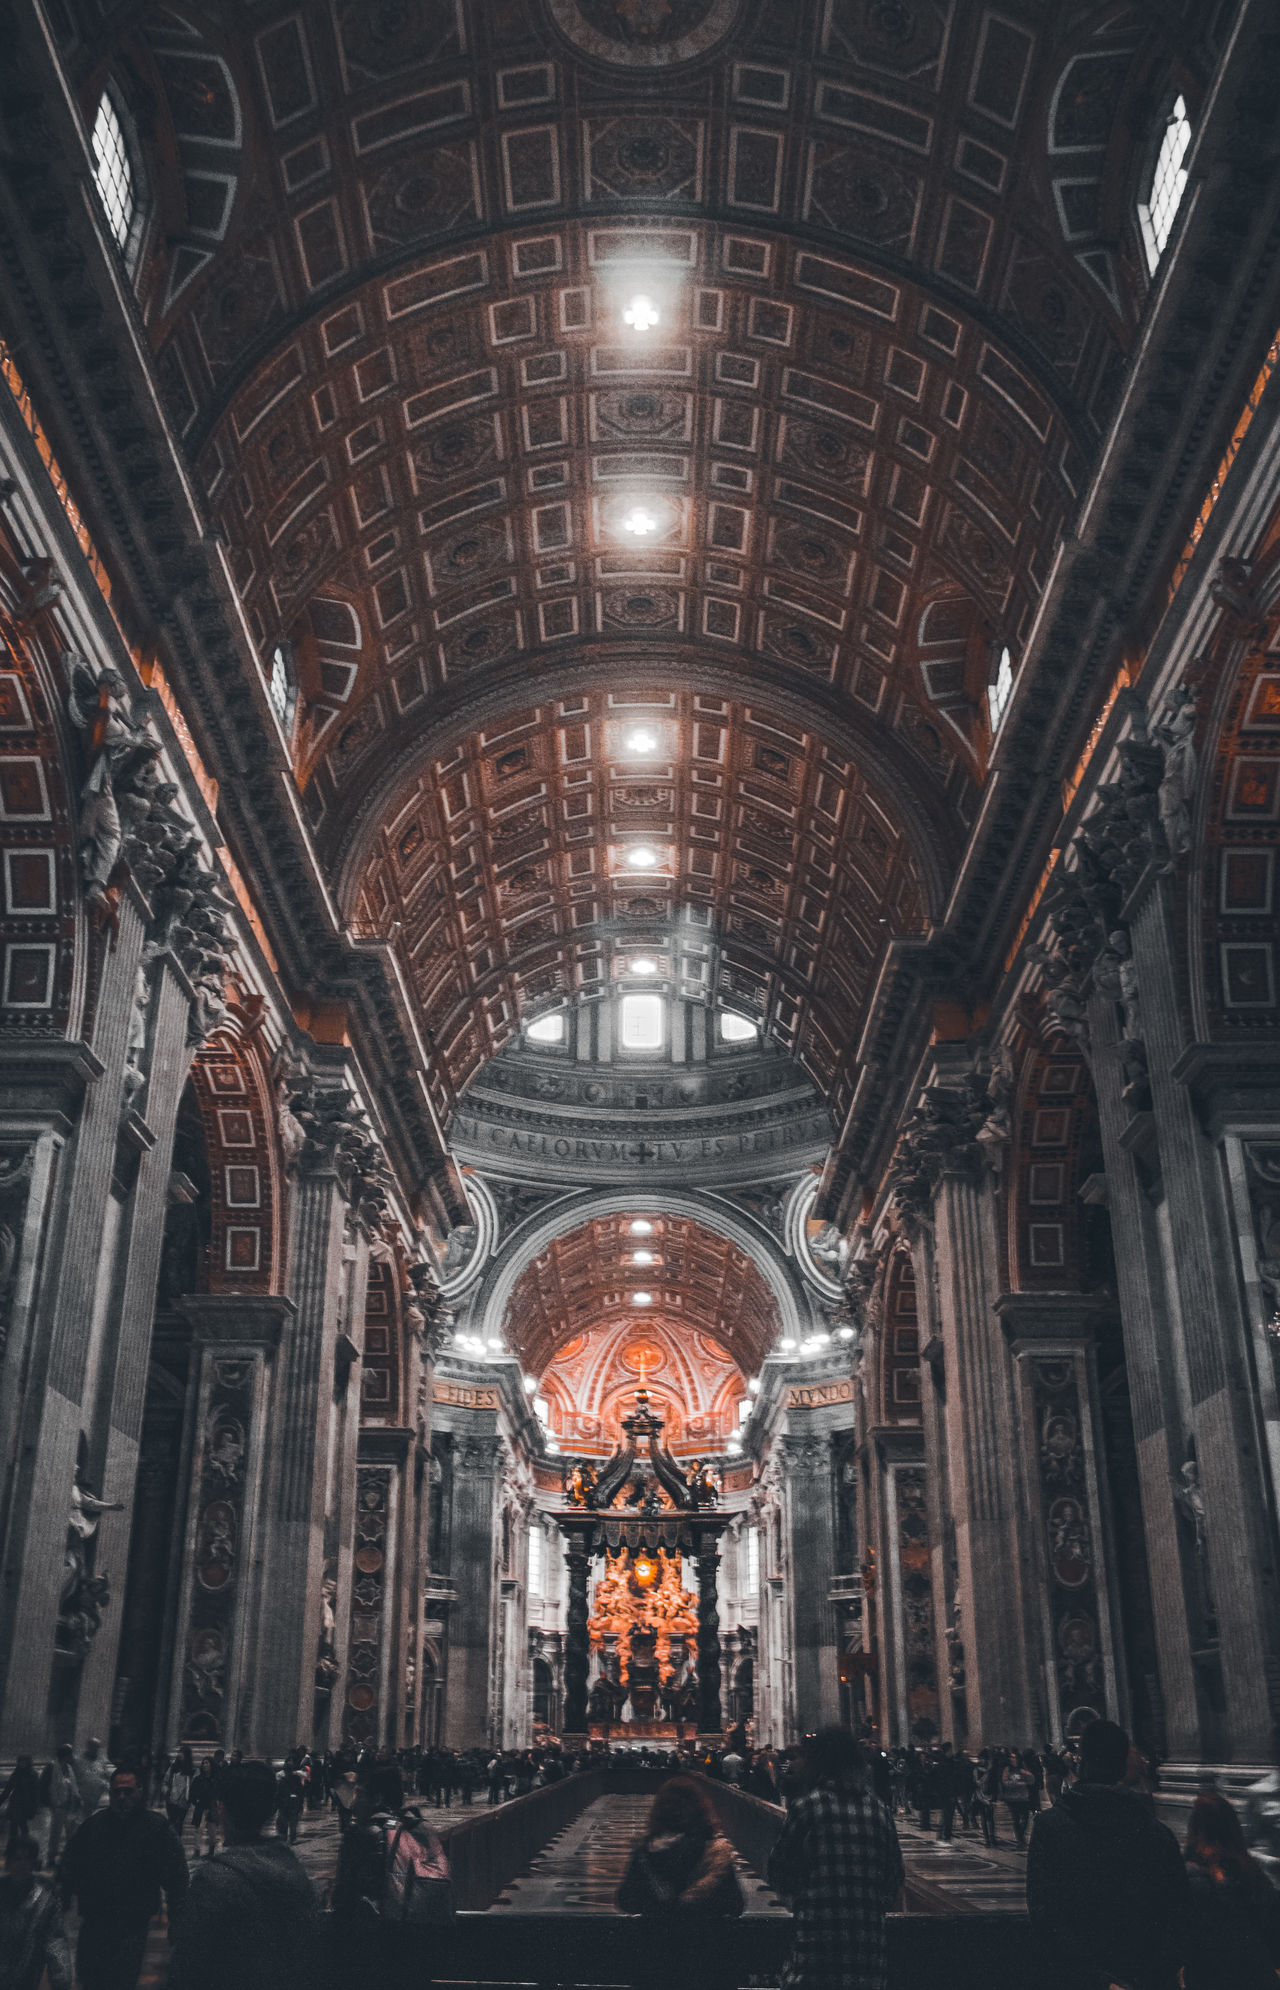 Indoors  No People Illuminated Day Church Italy Architecture EyeEm Best Shots Symmetry Traveling Exploring Europe Colors EyeEm EyeEm Best Edits EyeEm Gallery People Vatican City Cultures Religion Spirituality Place Of Worship Low Angle View Eye4photography  Built Structure